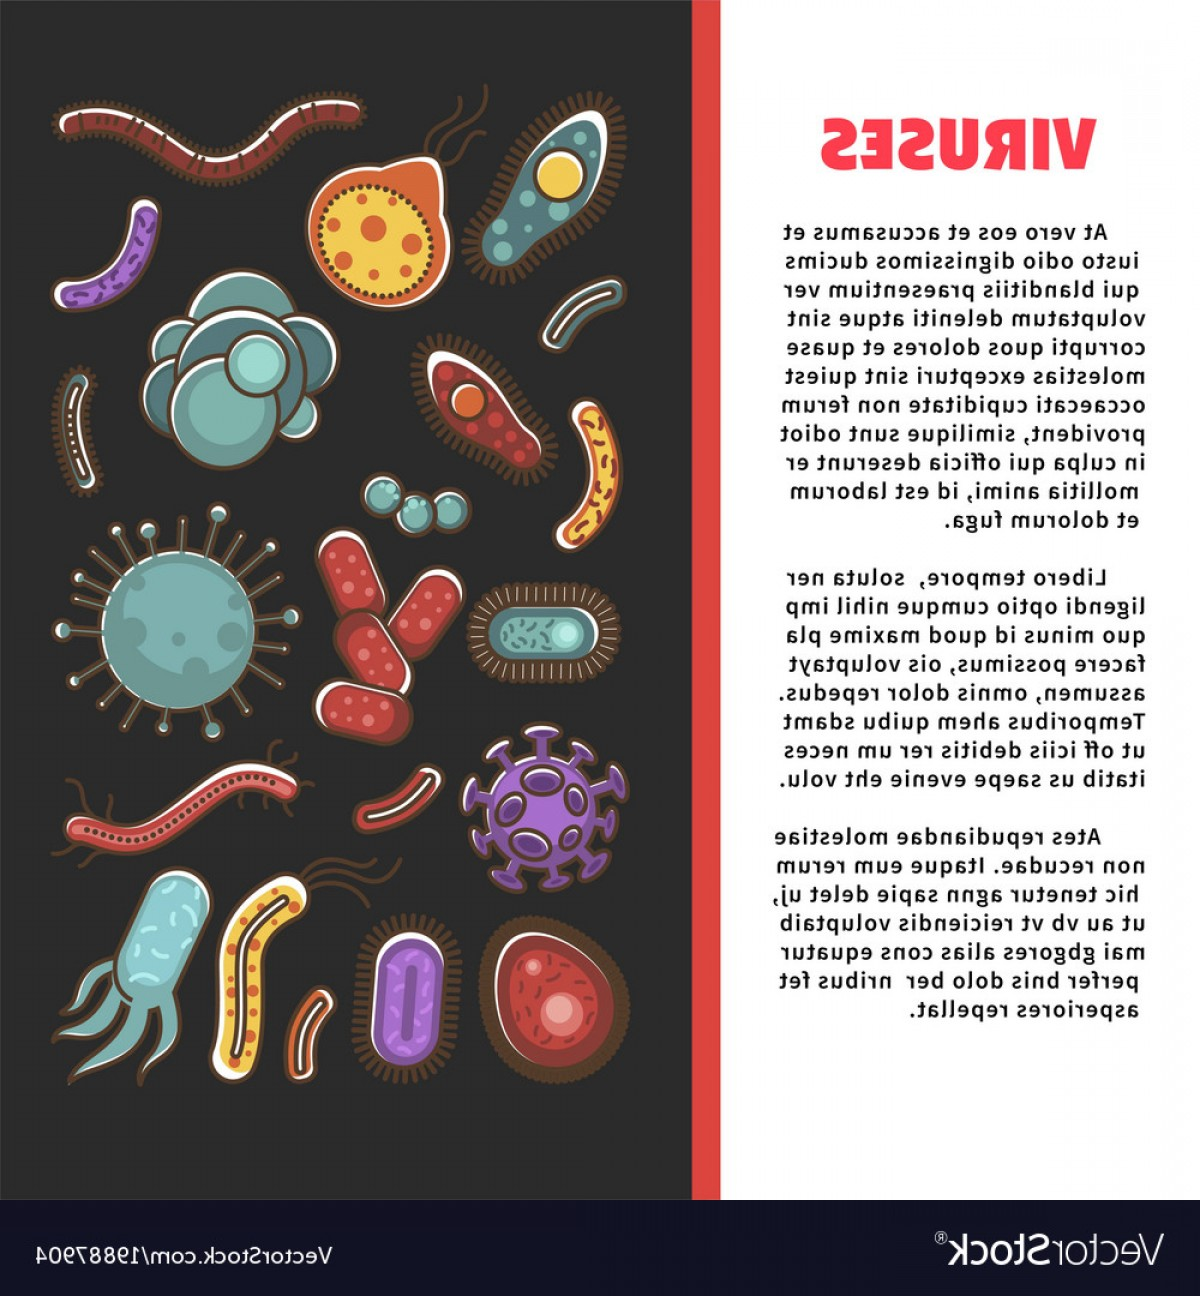 Vector Organisms On A Person: Viruses Informative Scientific Poster With Simple Vector